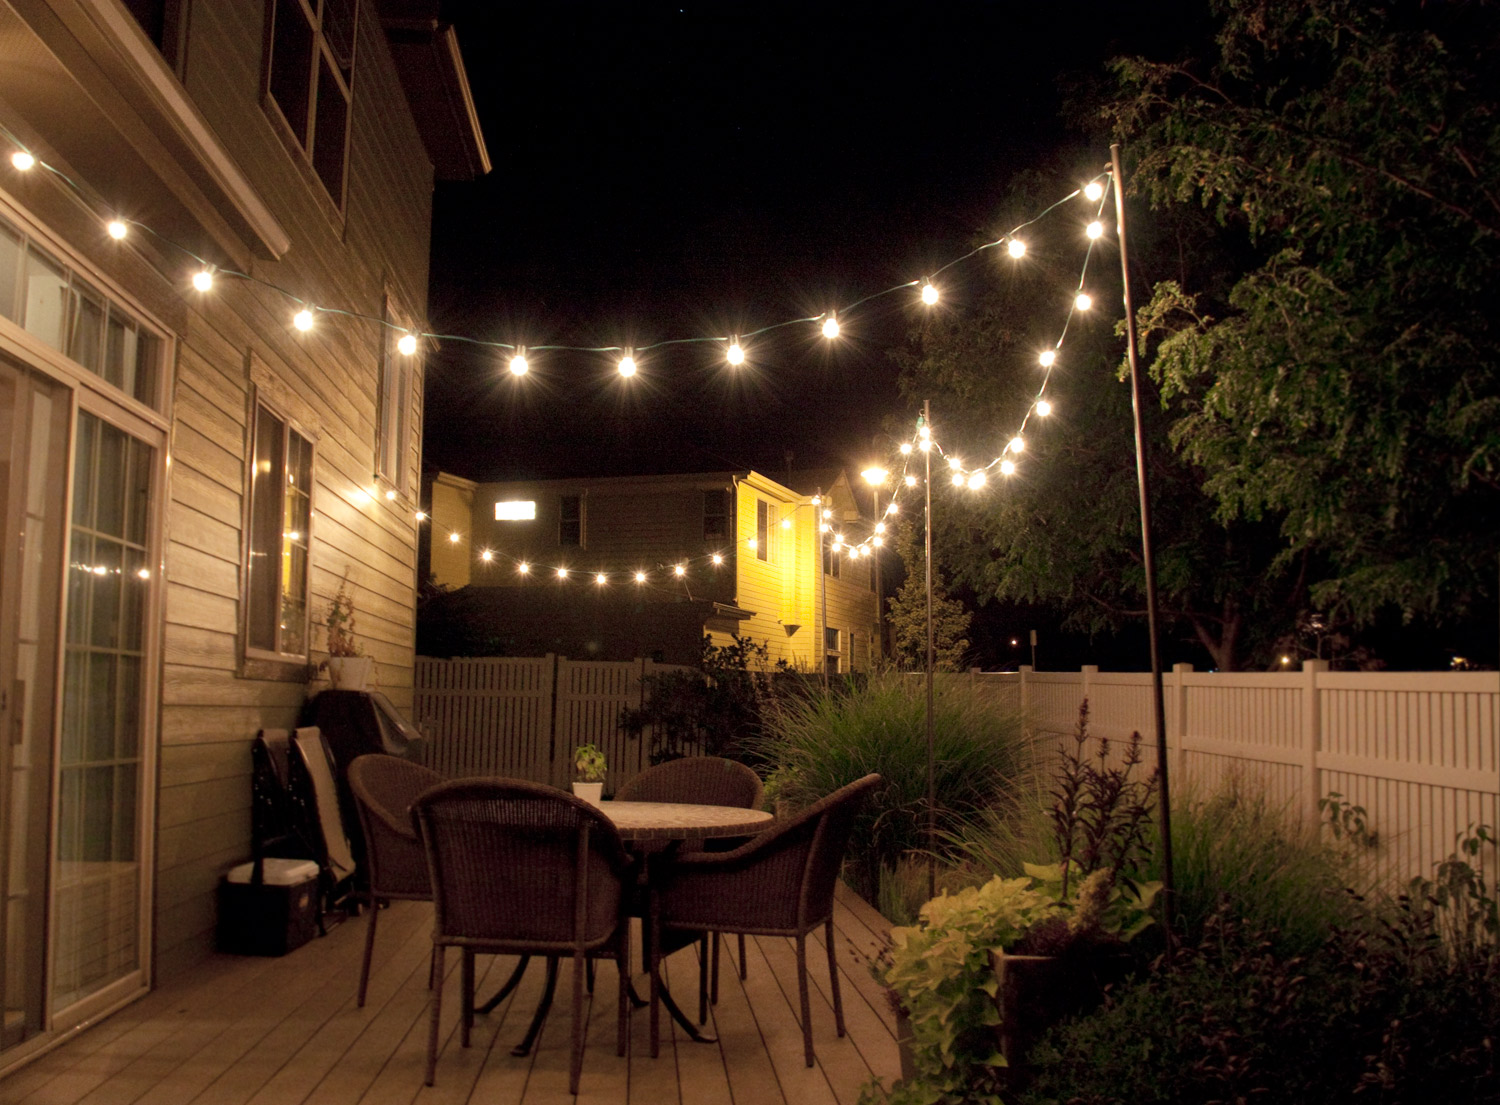 17 outdoor lighting ideas for the garden scattered thoughts of a 17 outdoor lighting ideas for the garden scattered thoughts of a crafty mom by jamie sanders mozeypictures Gallery